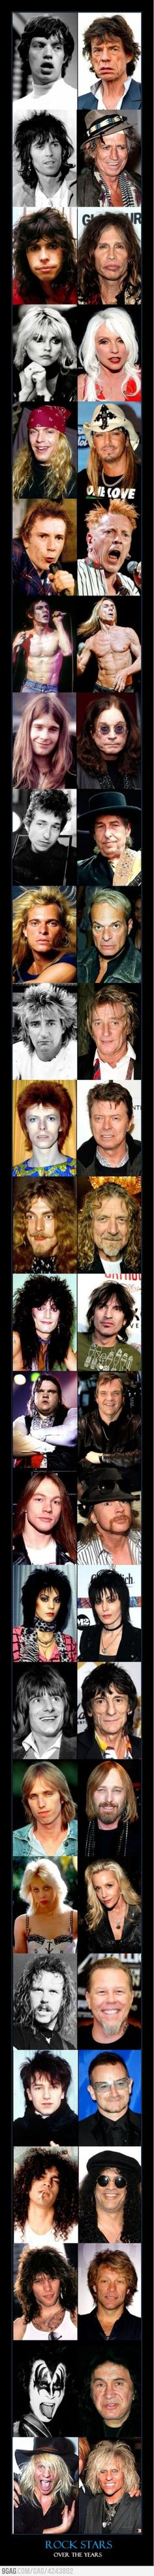 Rock stars, then & now